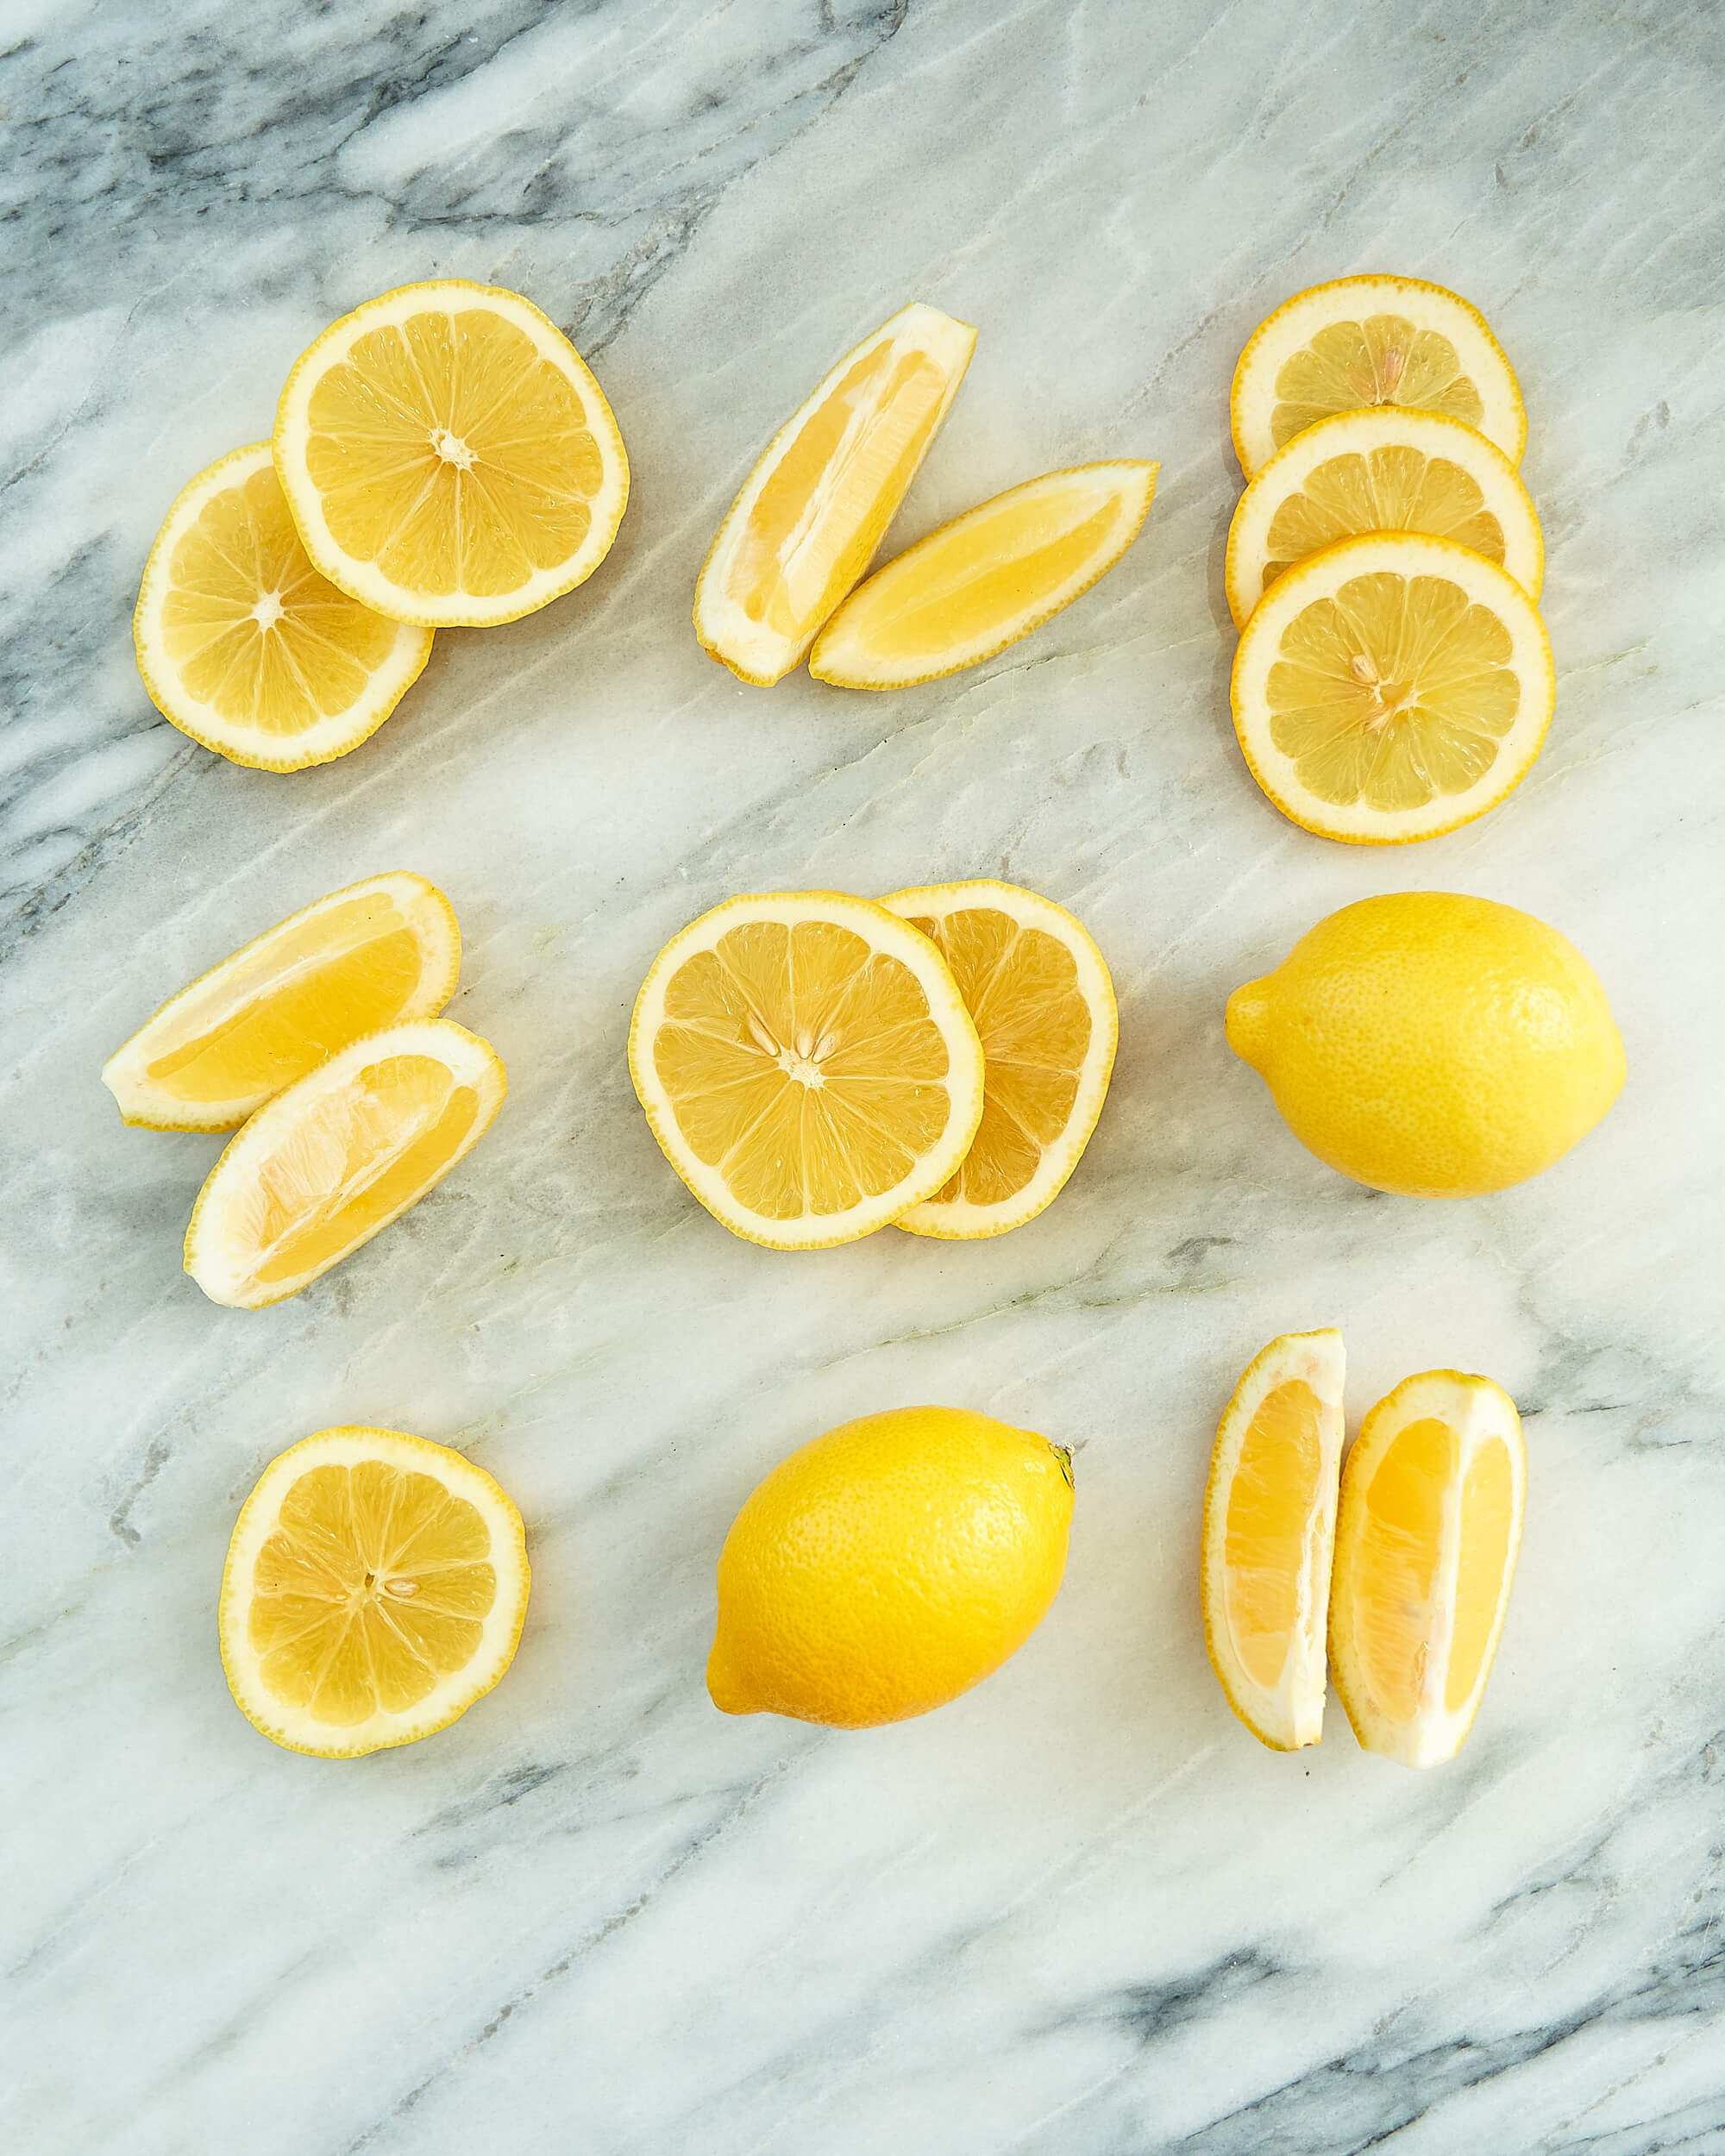 Lemons cut and displayed on a marble counter